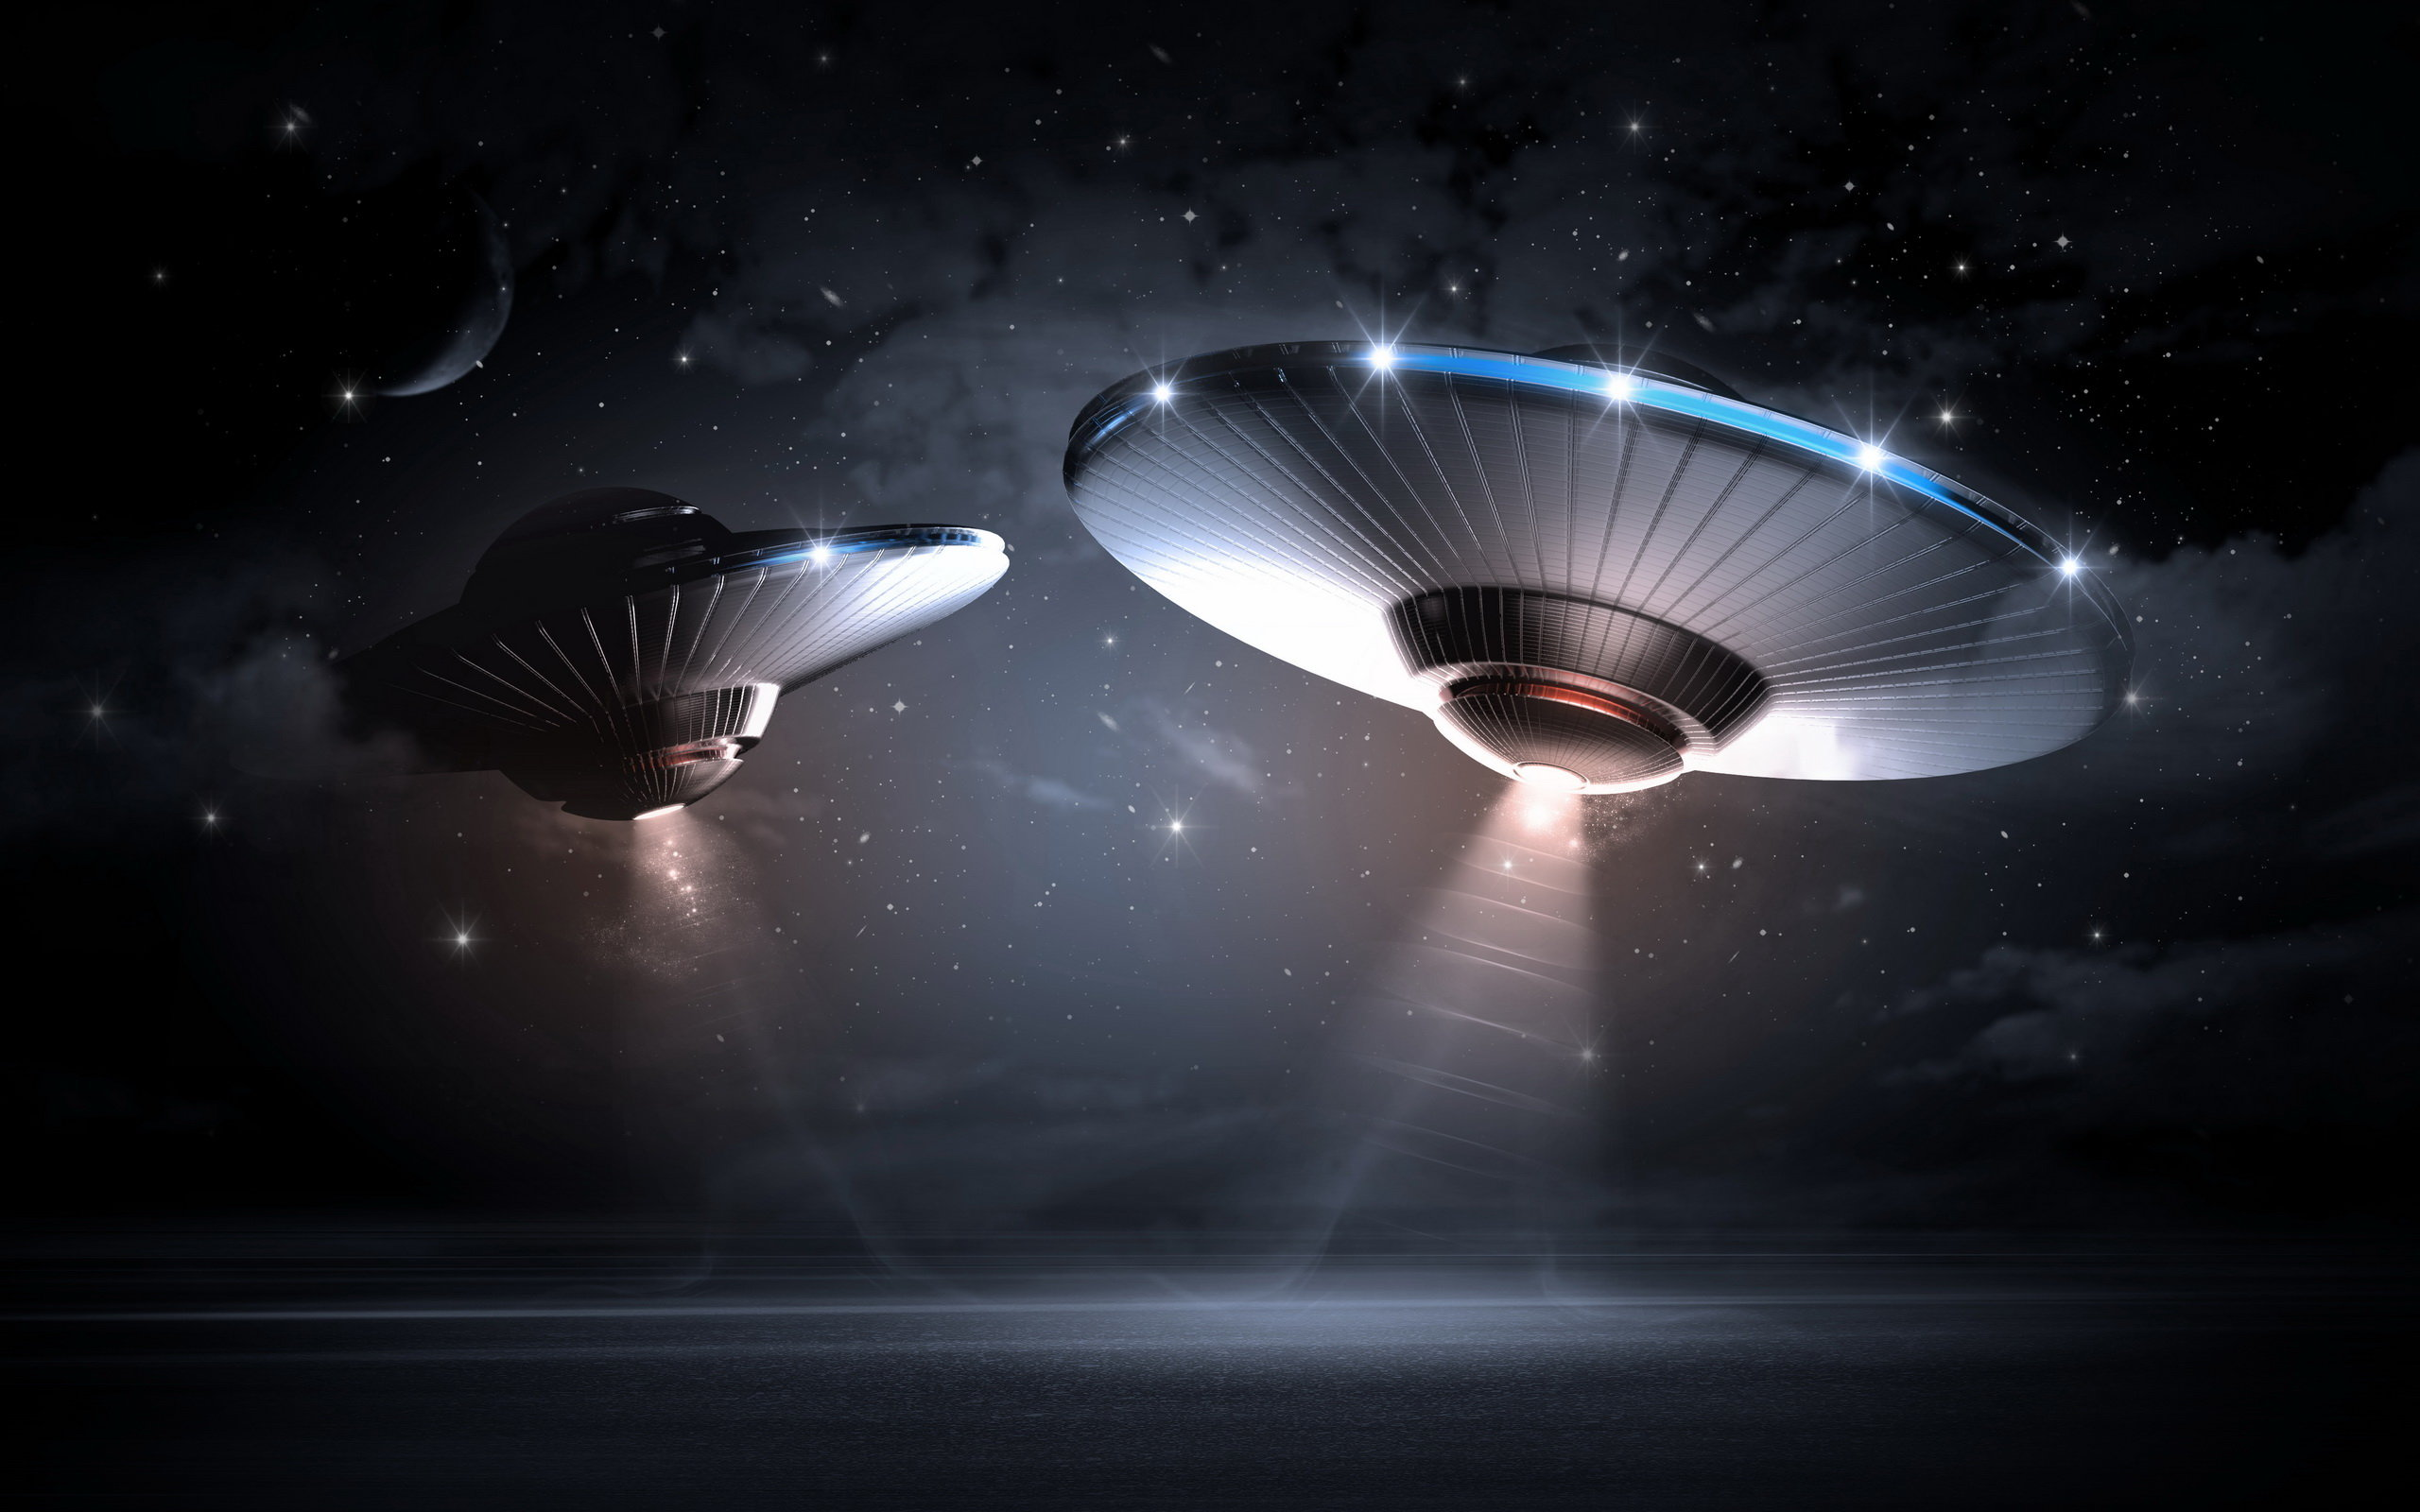 Free download Ufo background ID:48553 hd 2560x1600 for desktop